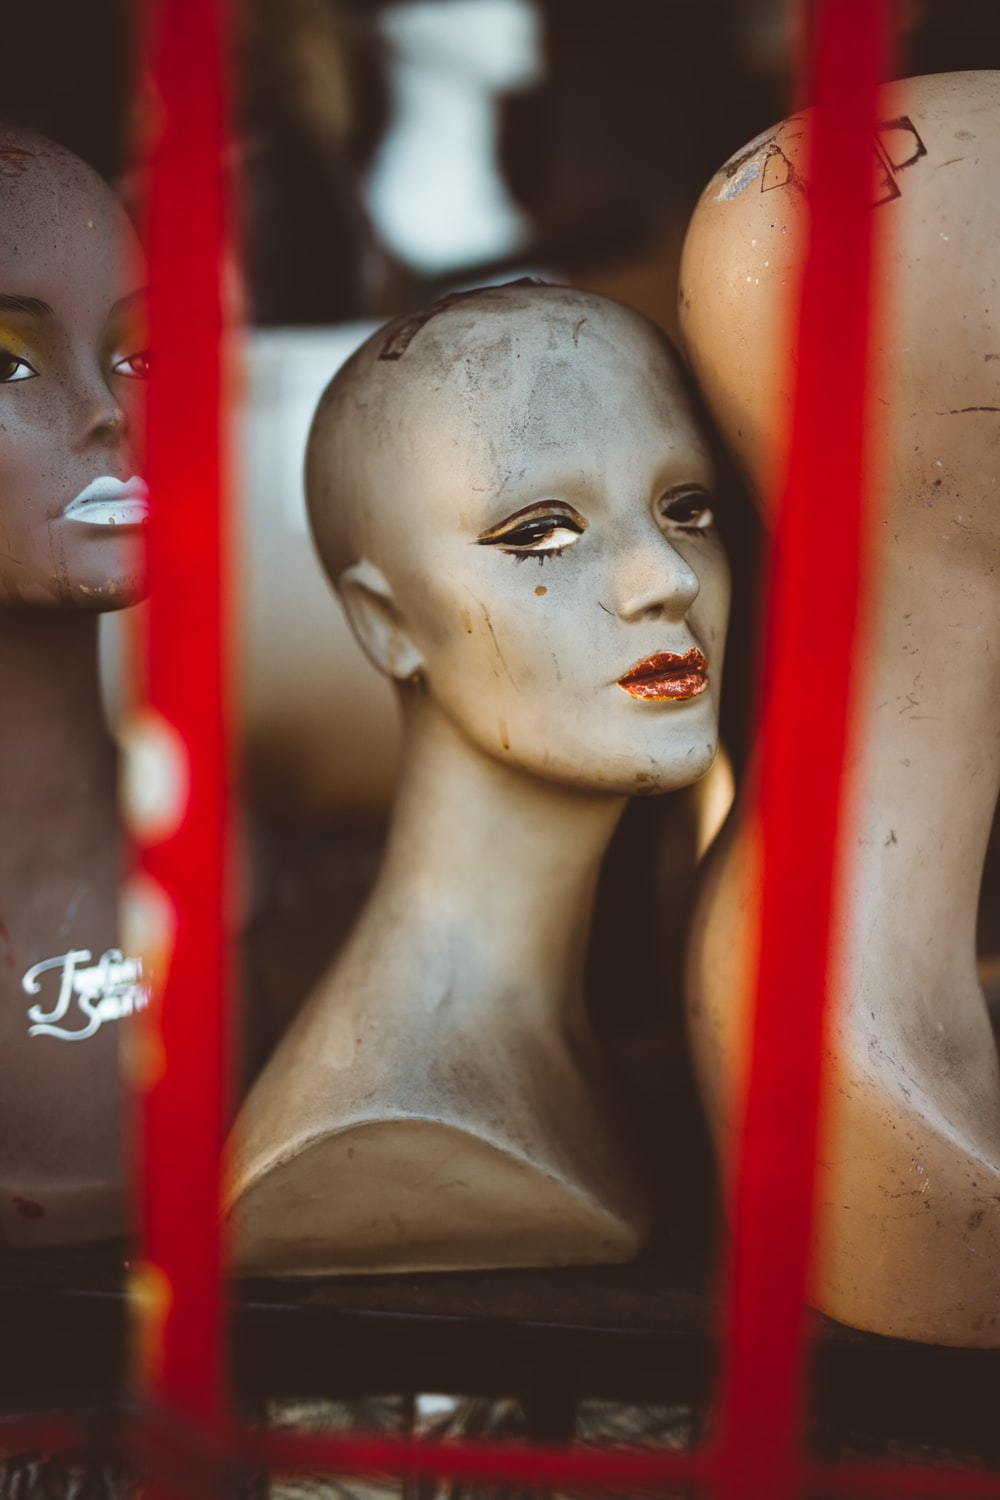 mannequin on brown surface